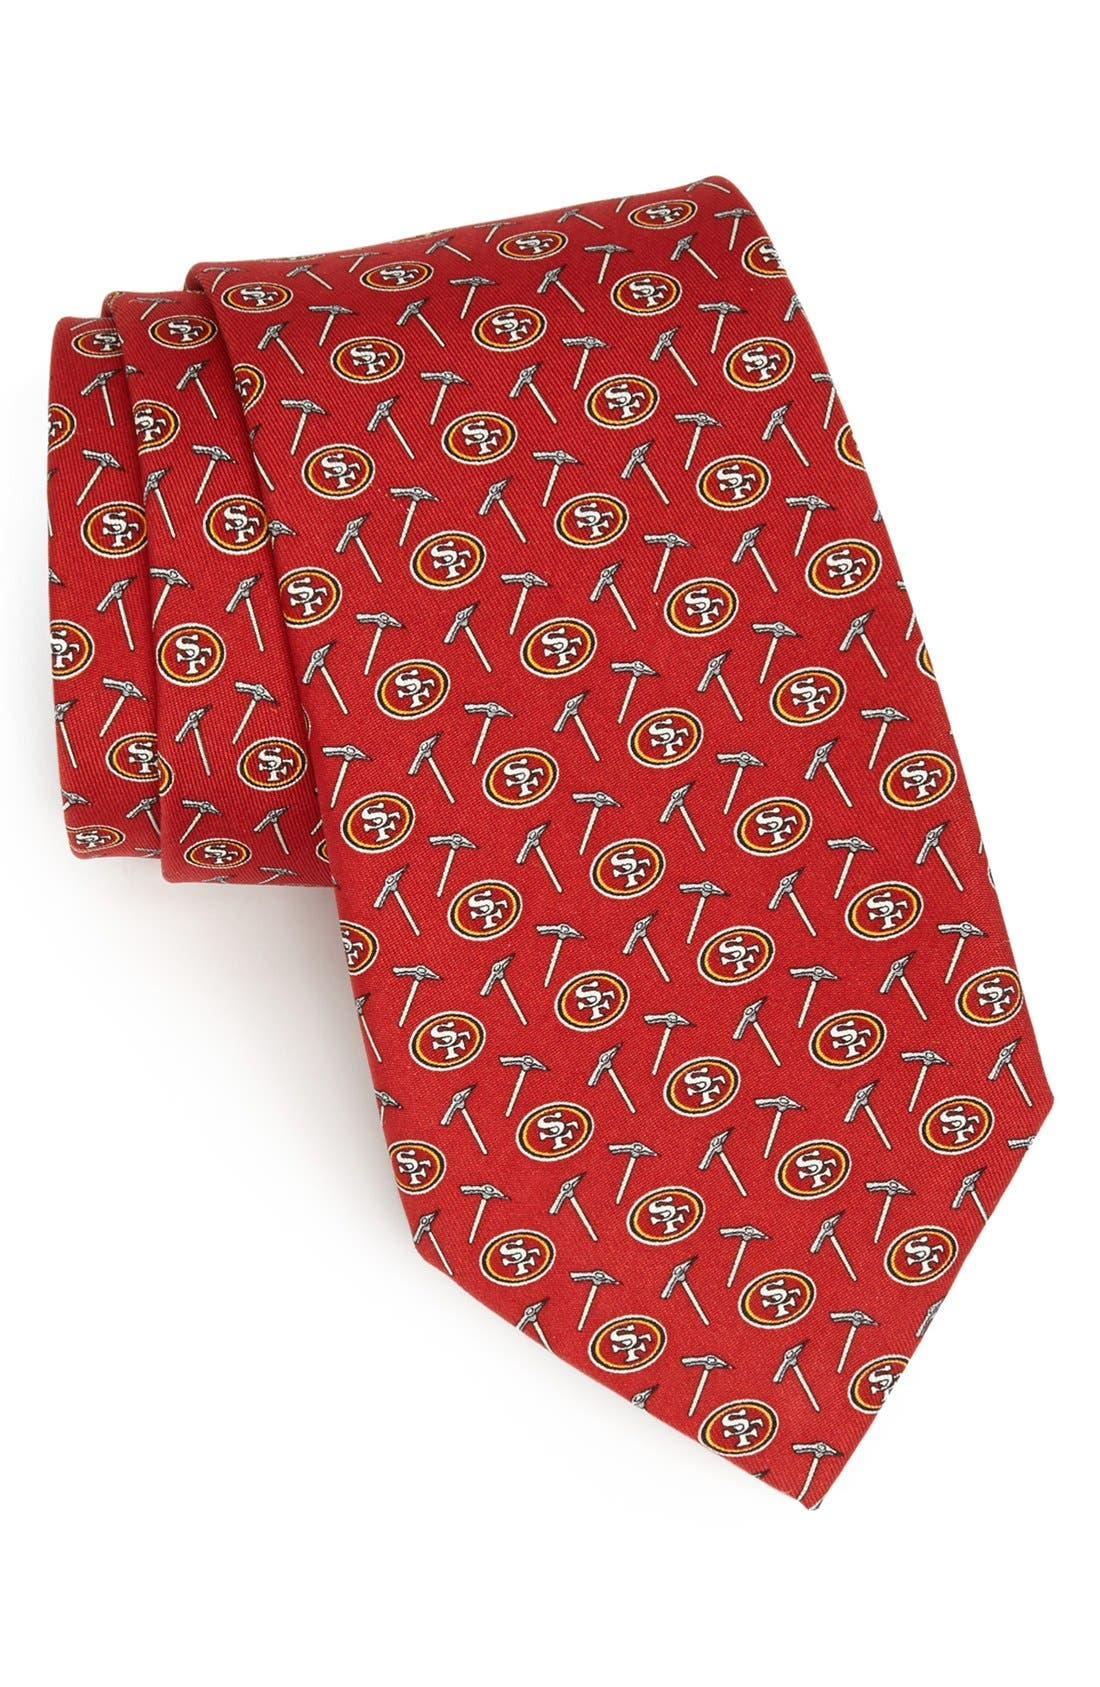 Vineyard Vines San Francisco 49ers Print Tie